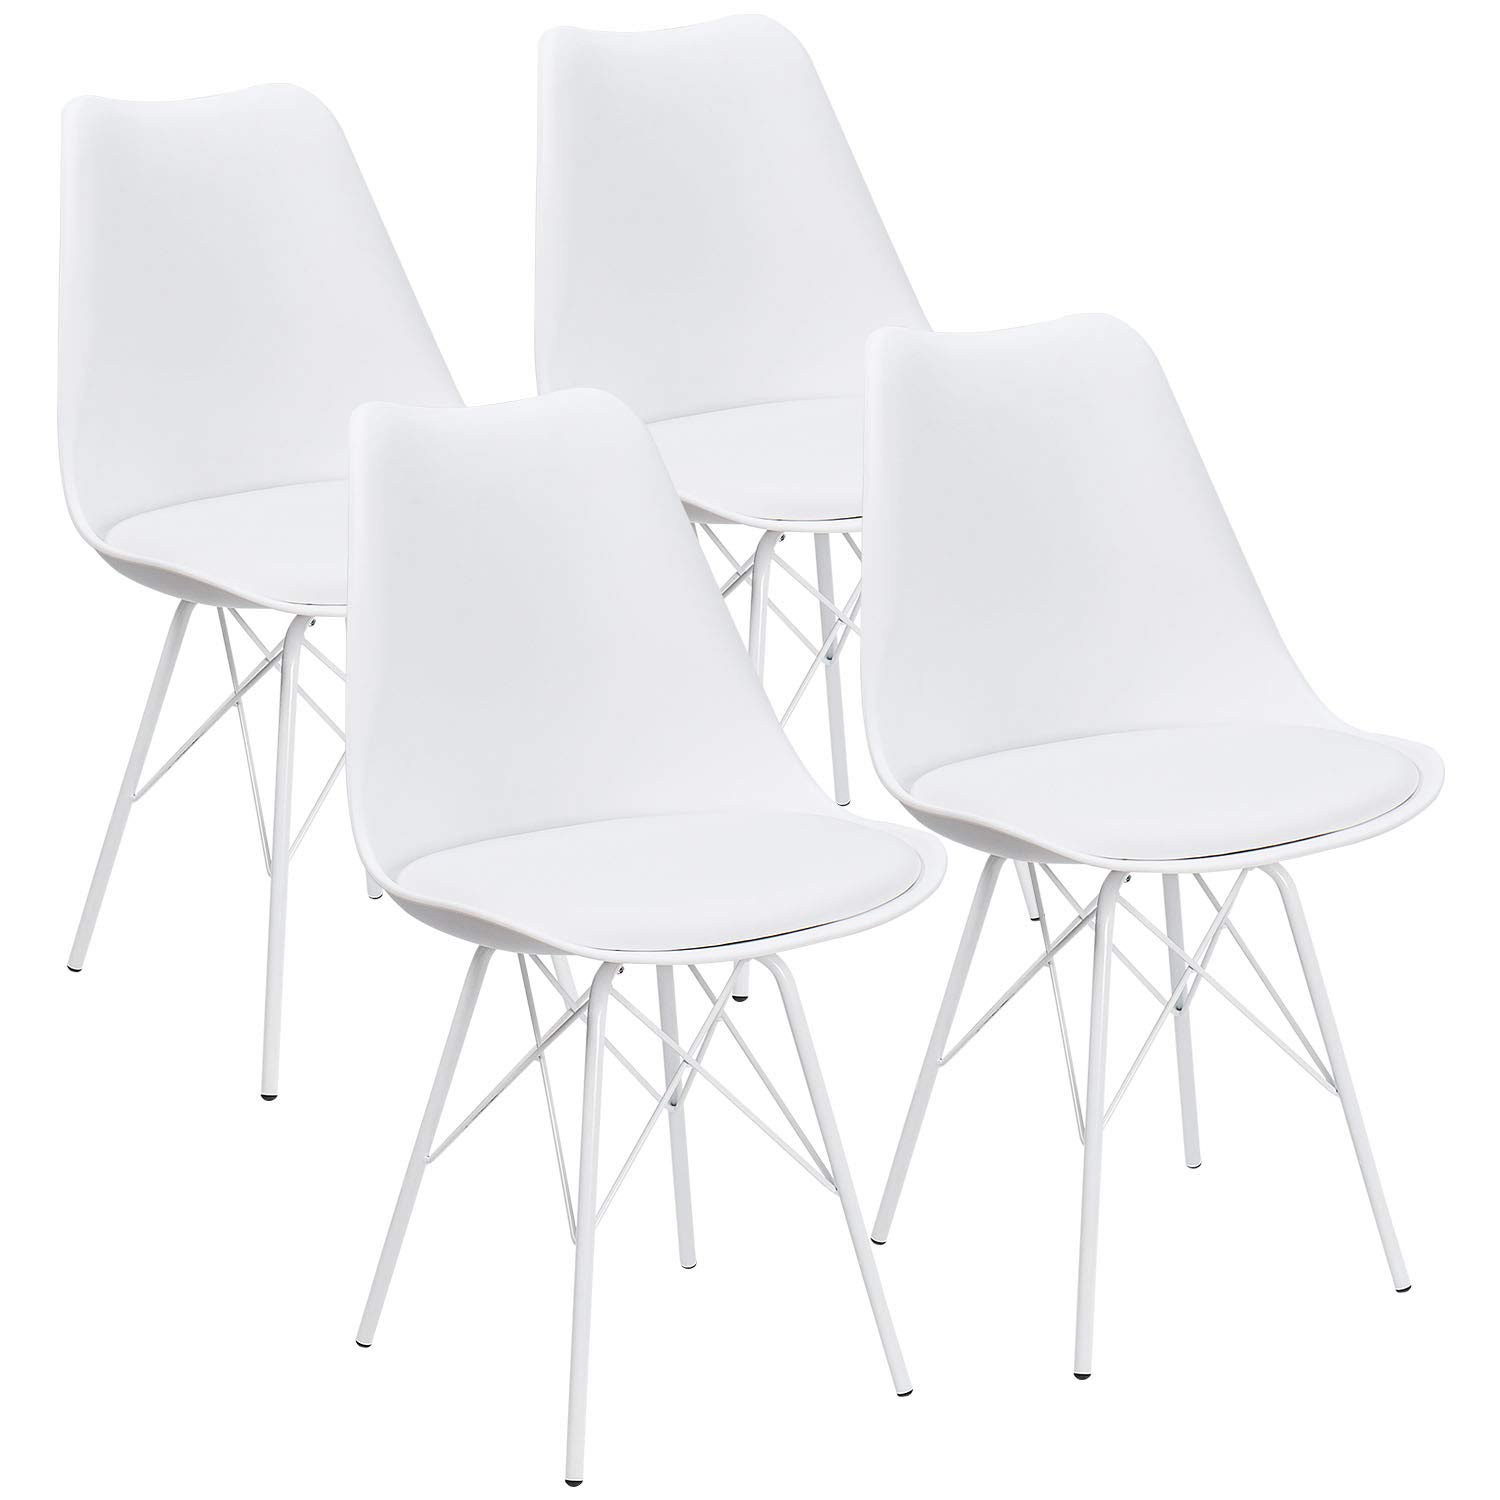 JUMMICO Kitchen Dining Chair with Soft Padded Mid Century Shell Side Chair Armless Tulip Chair Set of 4 (White)